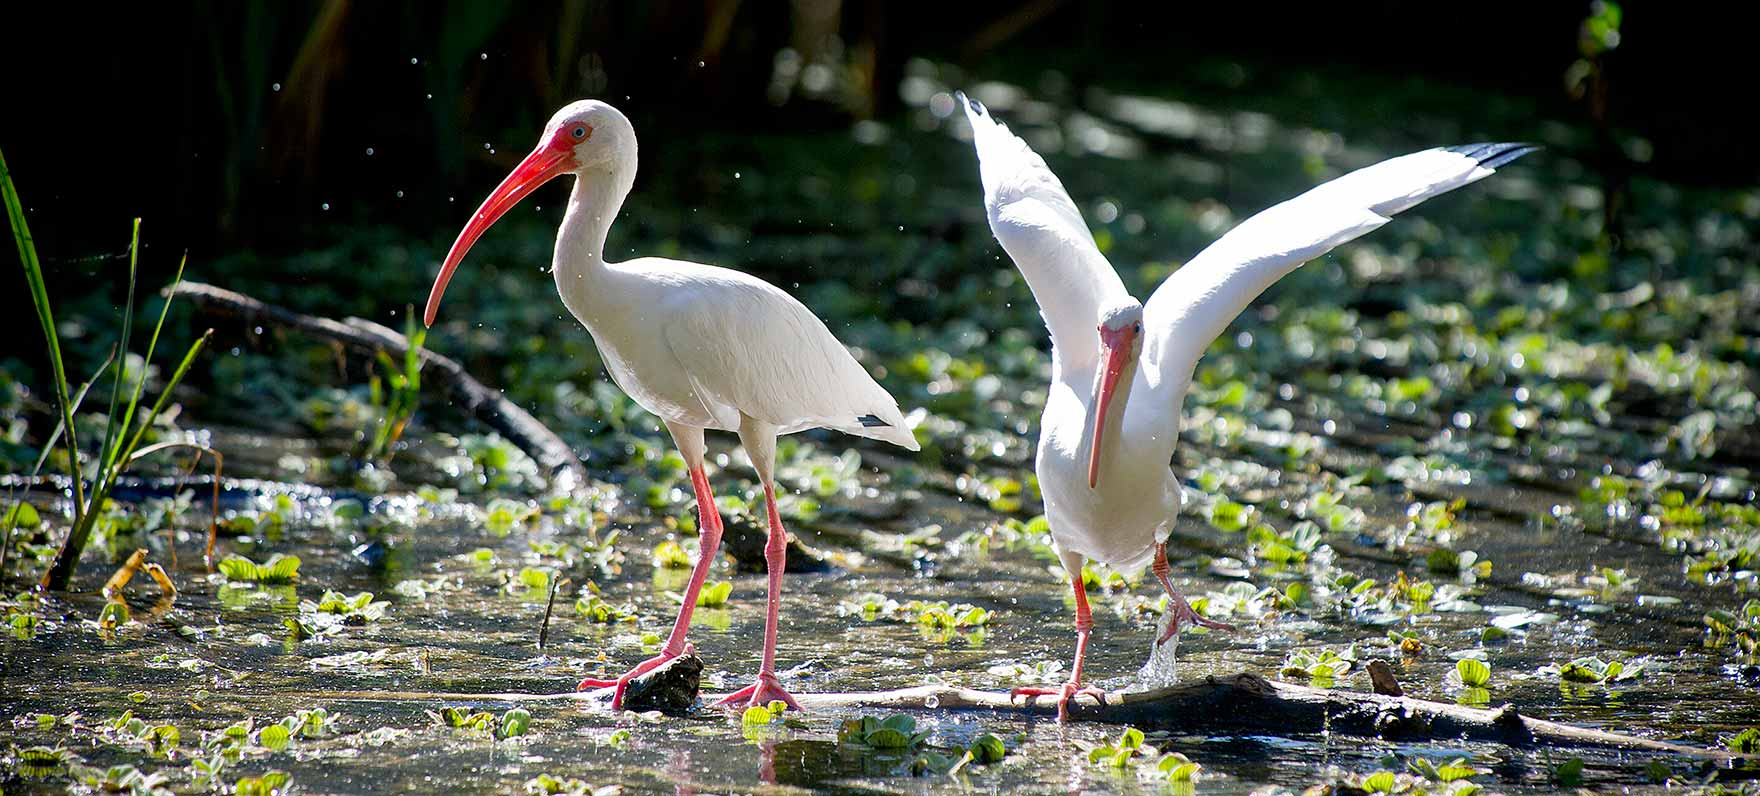 ibis: white with black wingtips and slender, curved bill